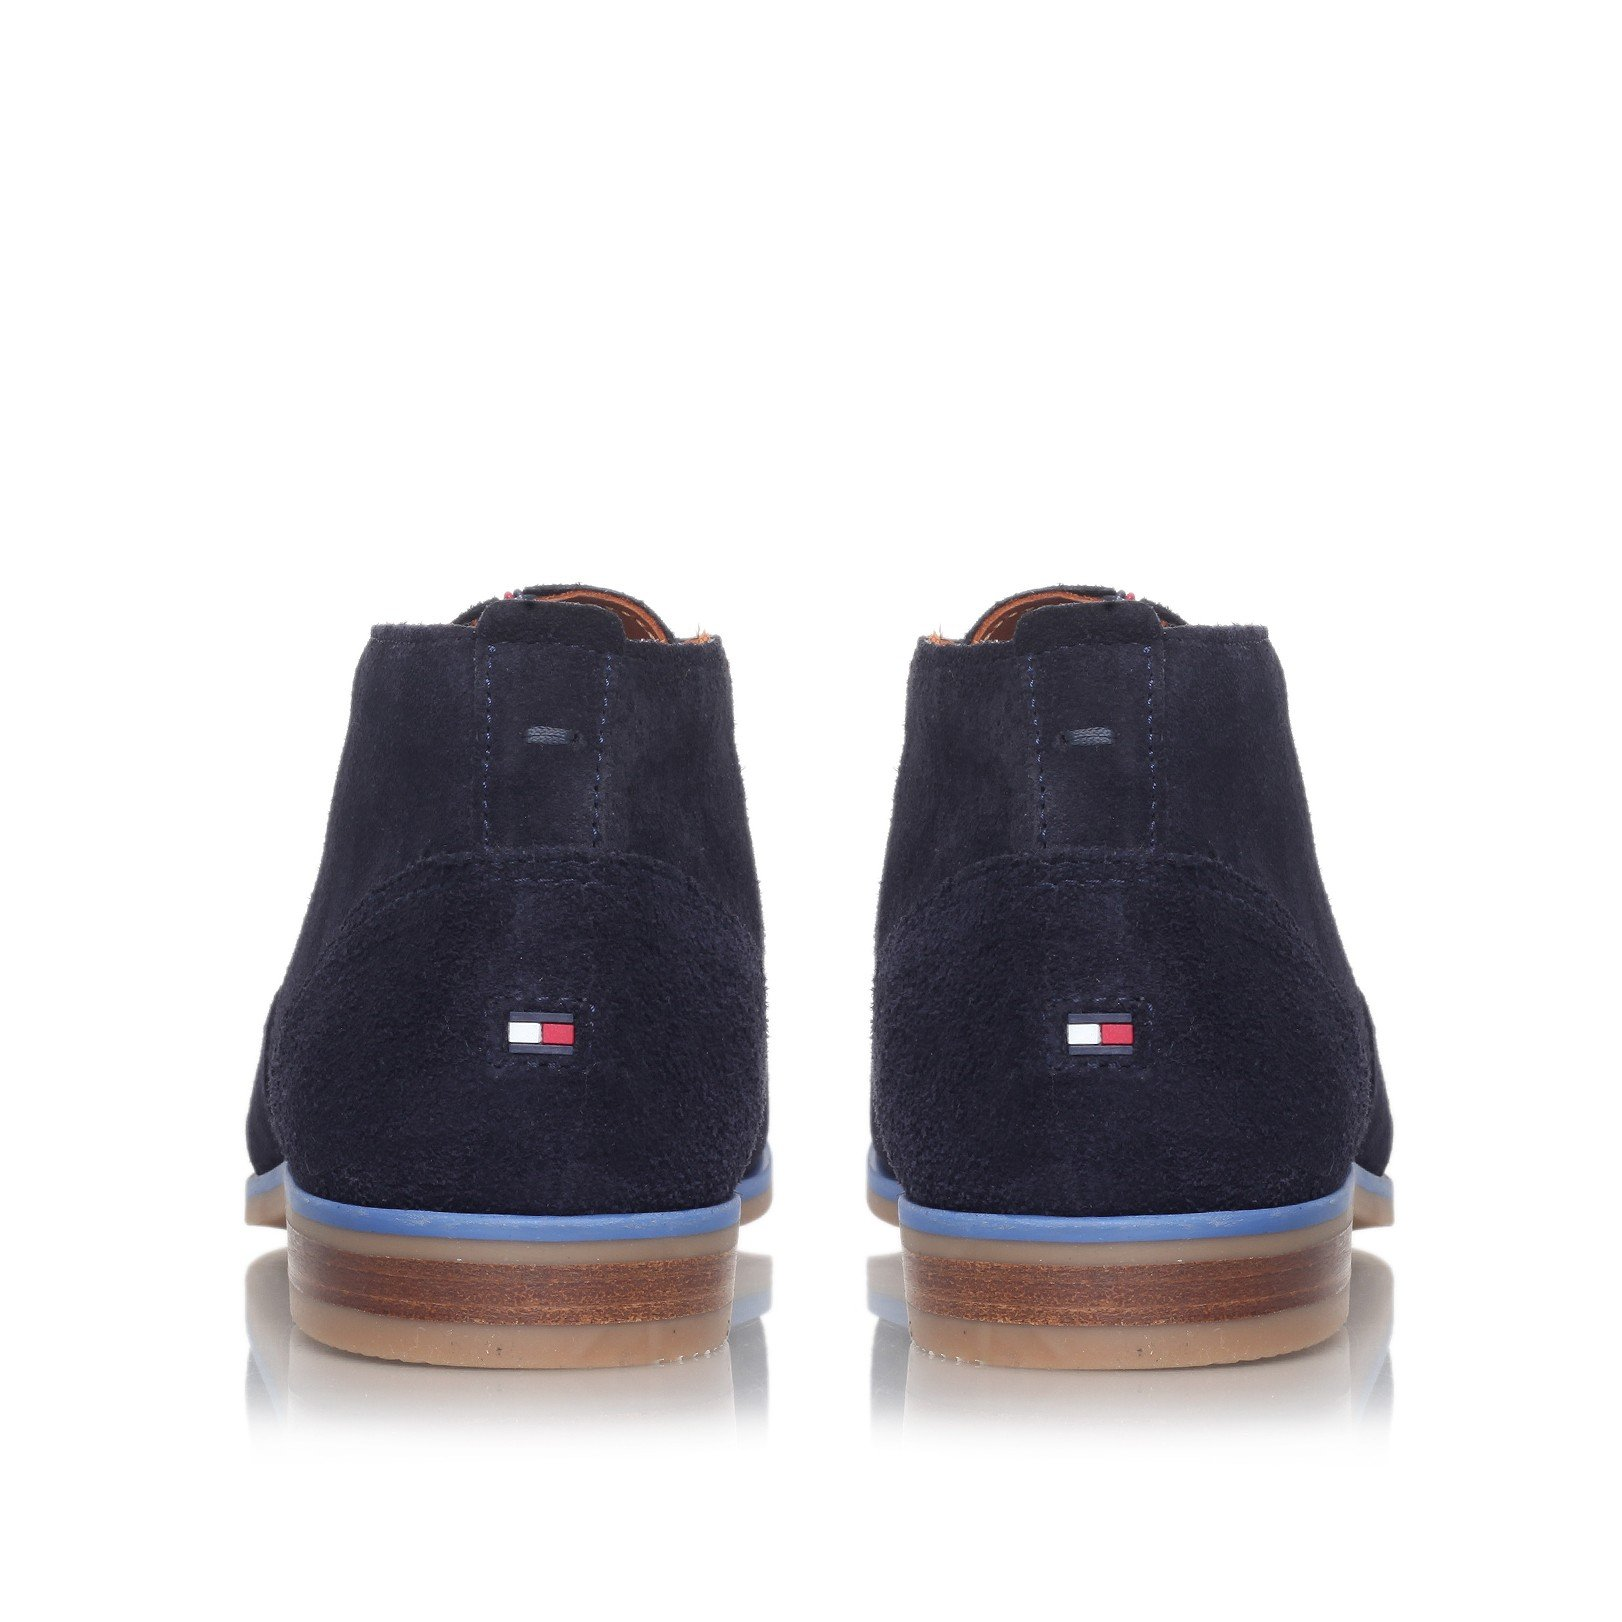 tommy hilfiger robert 2b desert boot in blue for men lyst. Black Bedroom Furniture Sets. Home Design Ideas